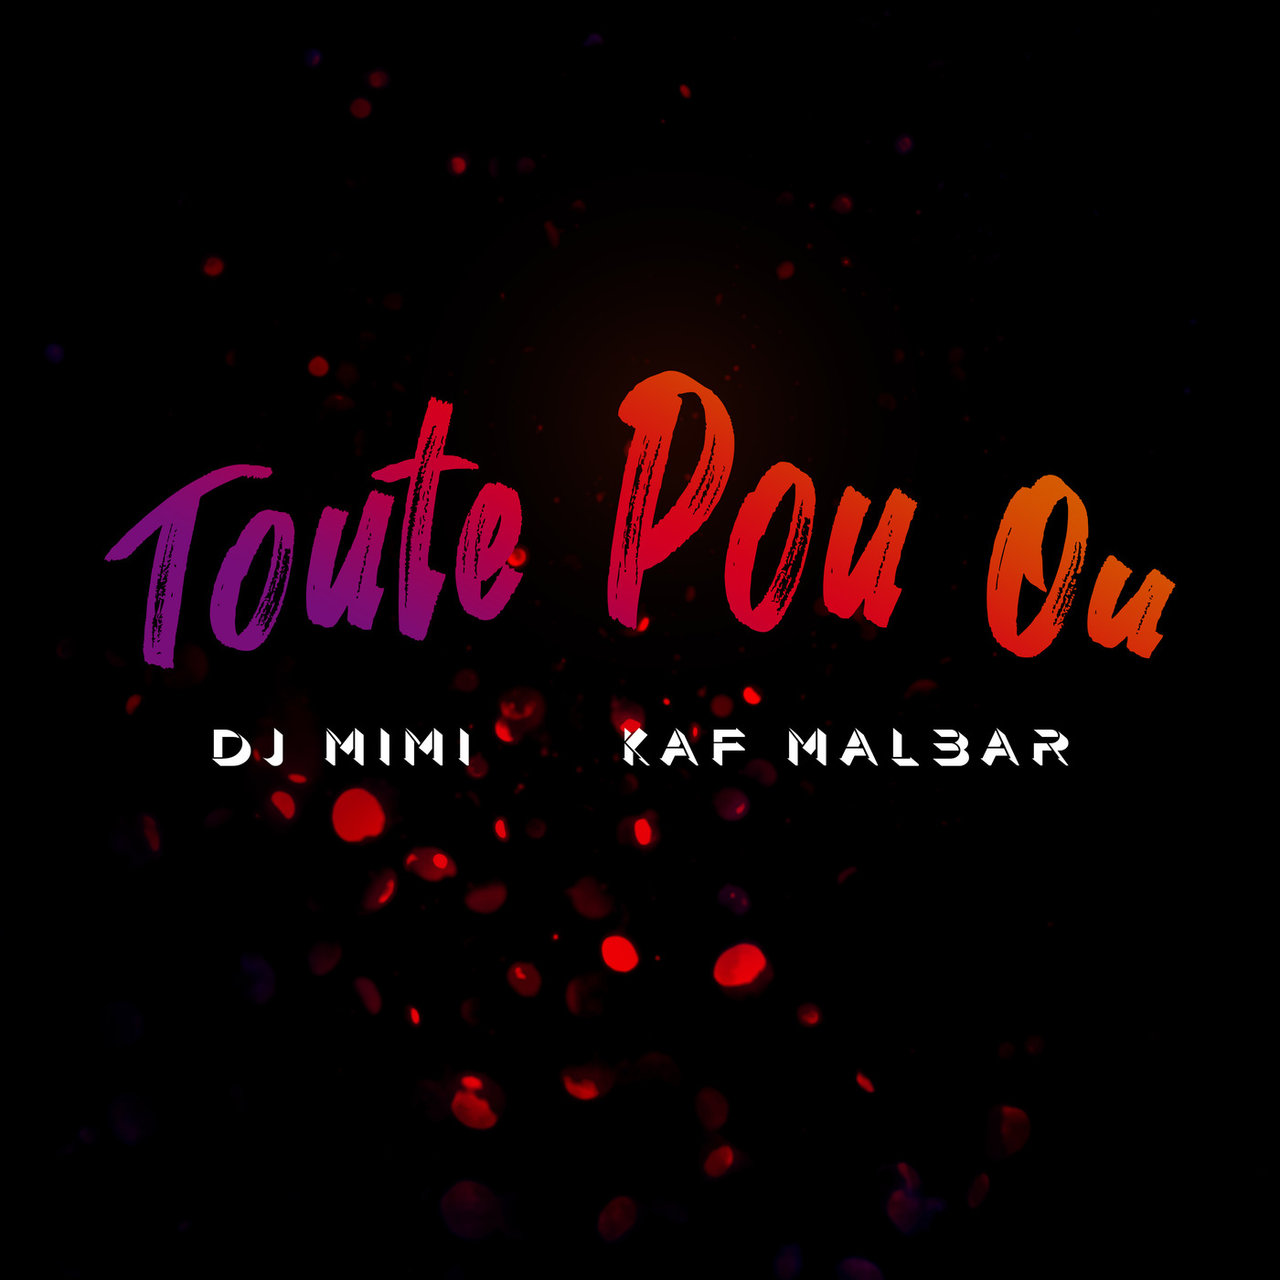 DJ Mimi and Kaf Malbar - Toute Pou Ou (Cover)